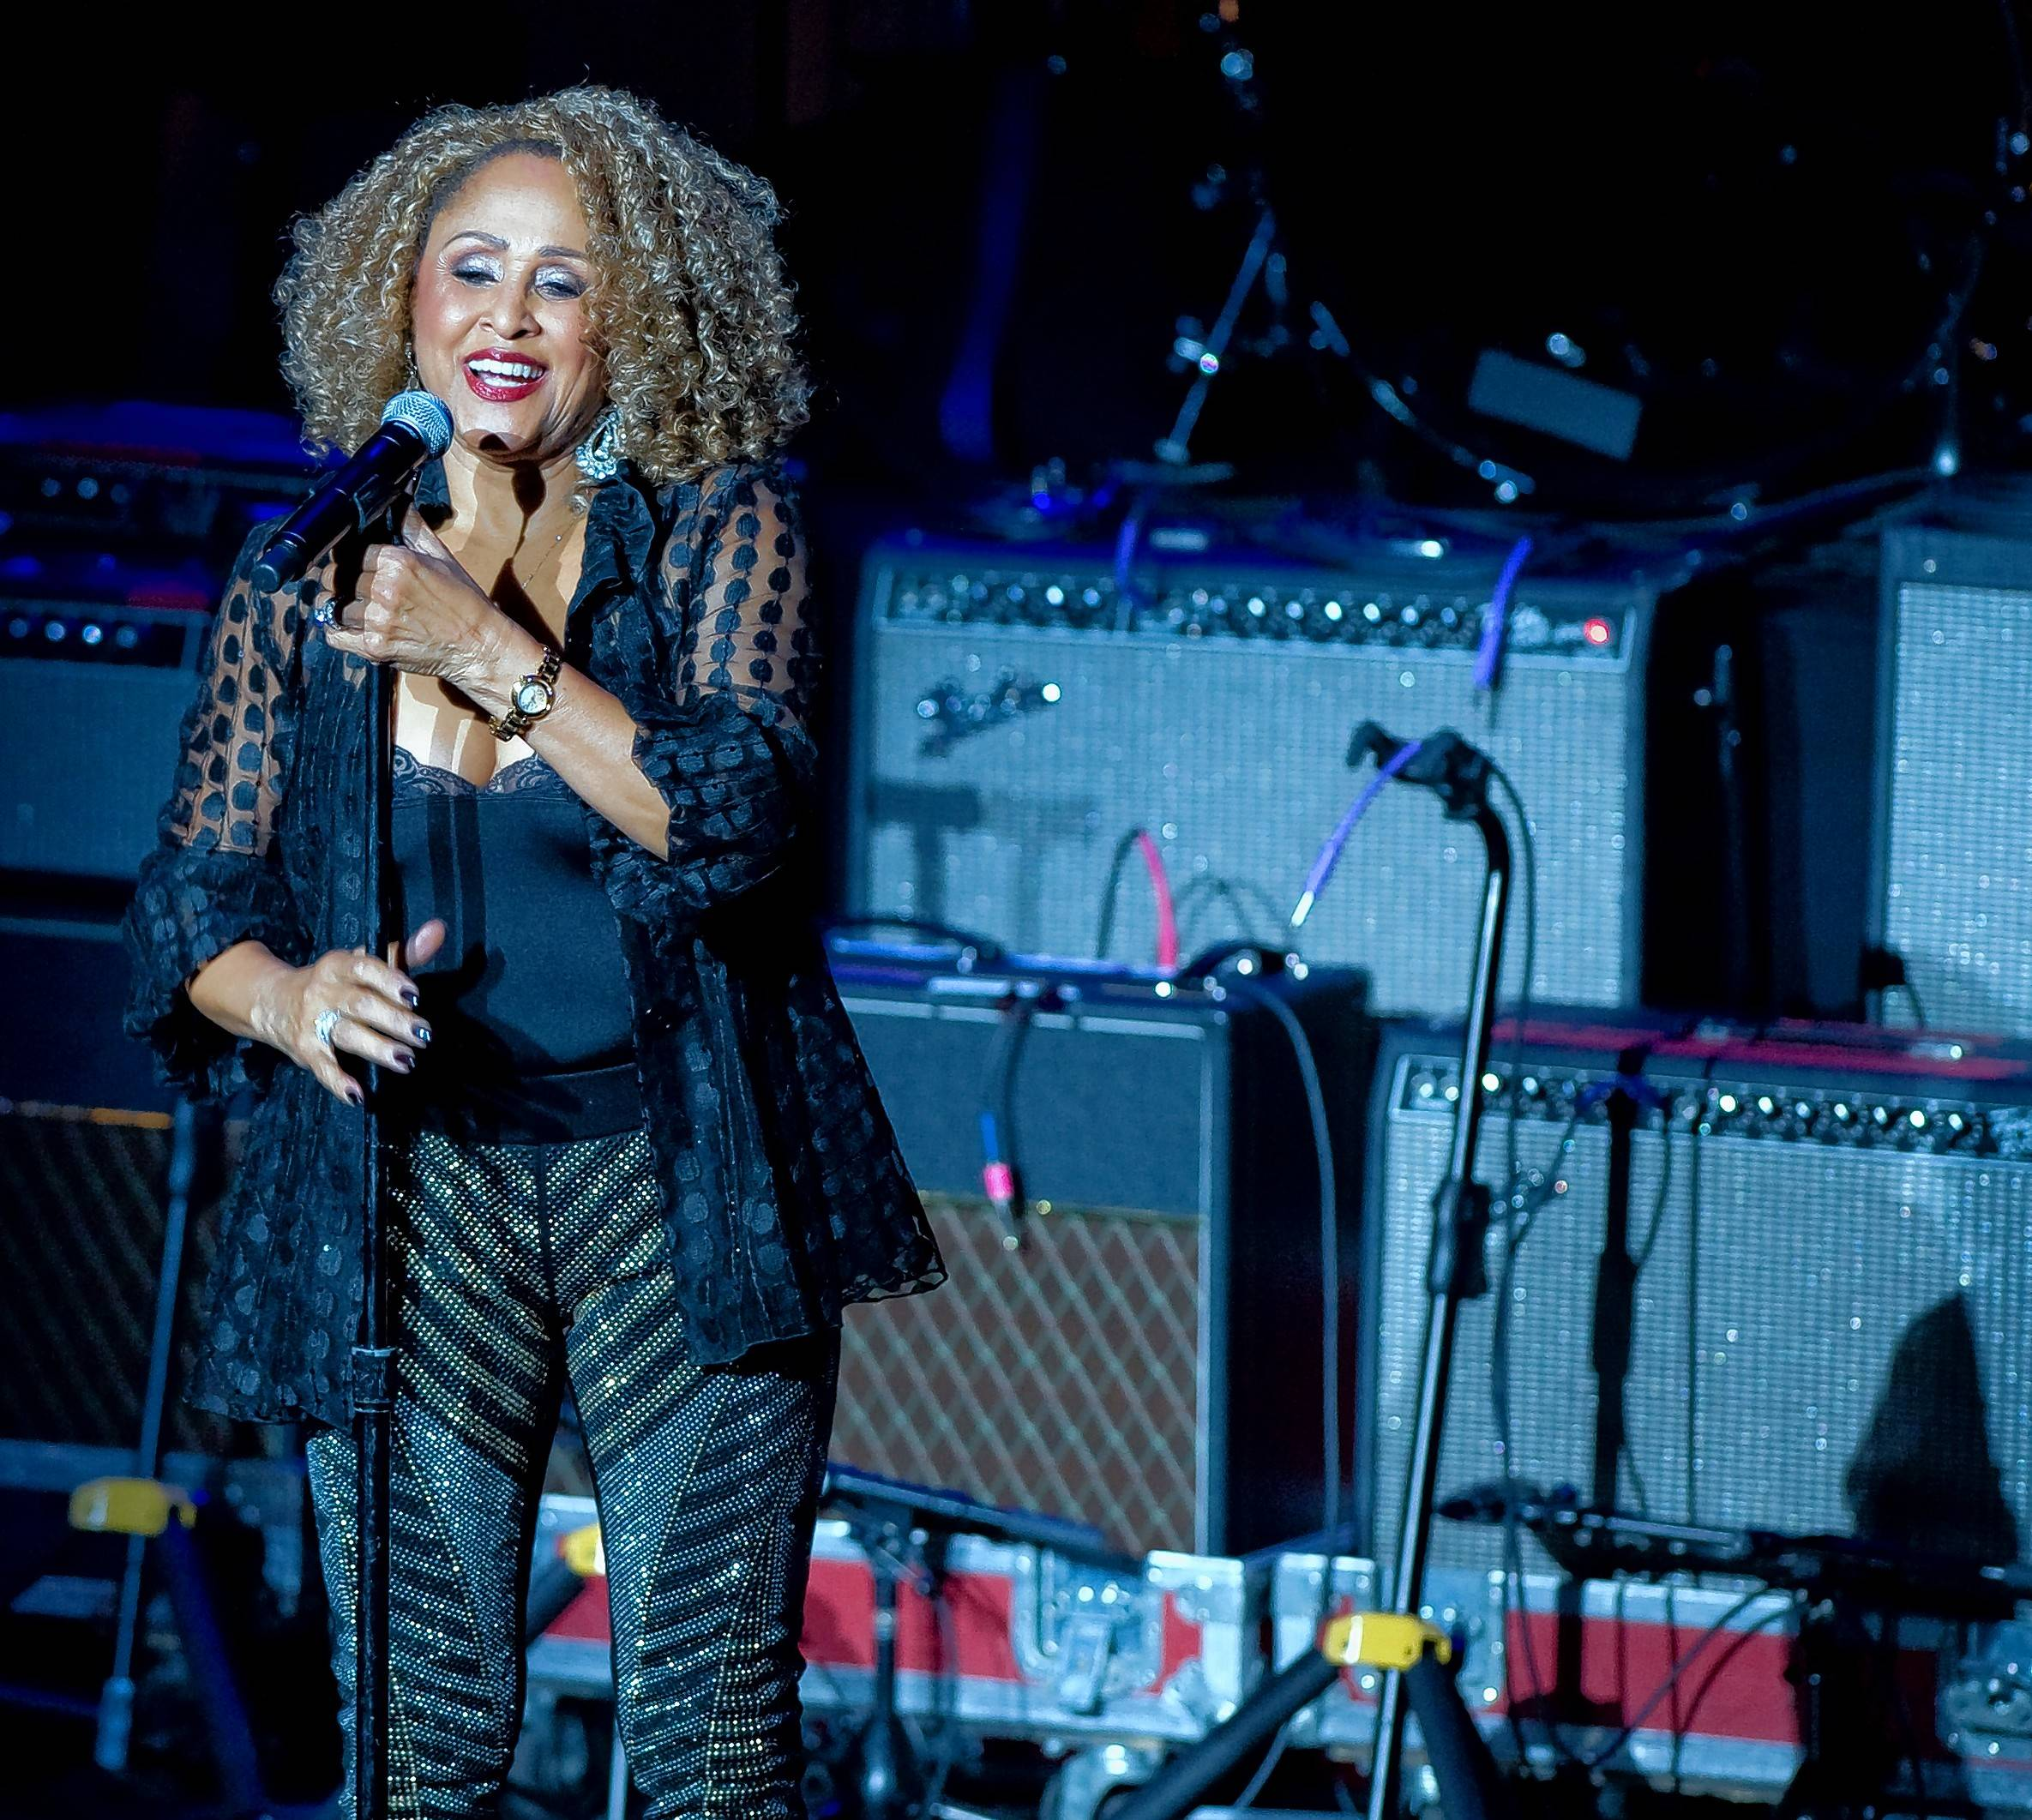 Darlene Love shares a concert bill with Shirley Alston Reeves at the Arcada Theatre in St. Charles on Sunday, Dec. 3.